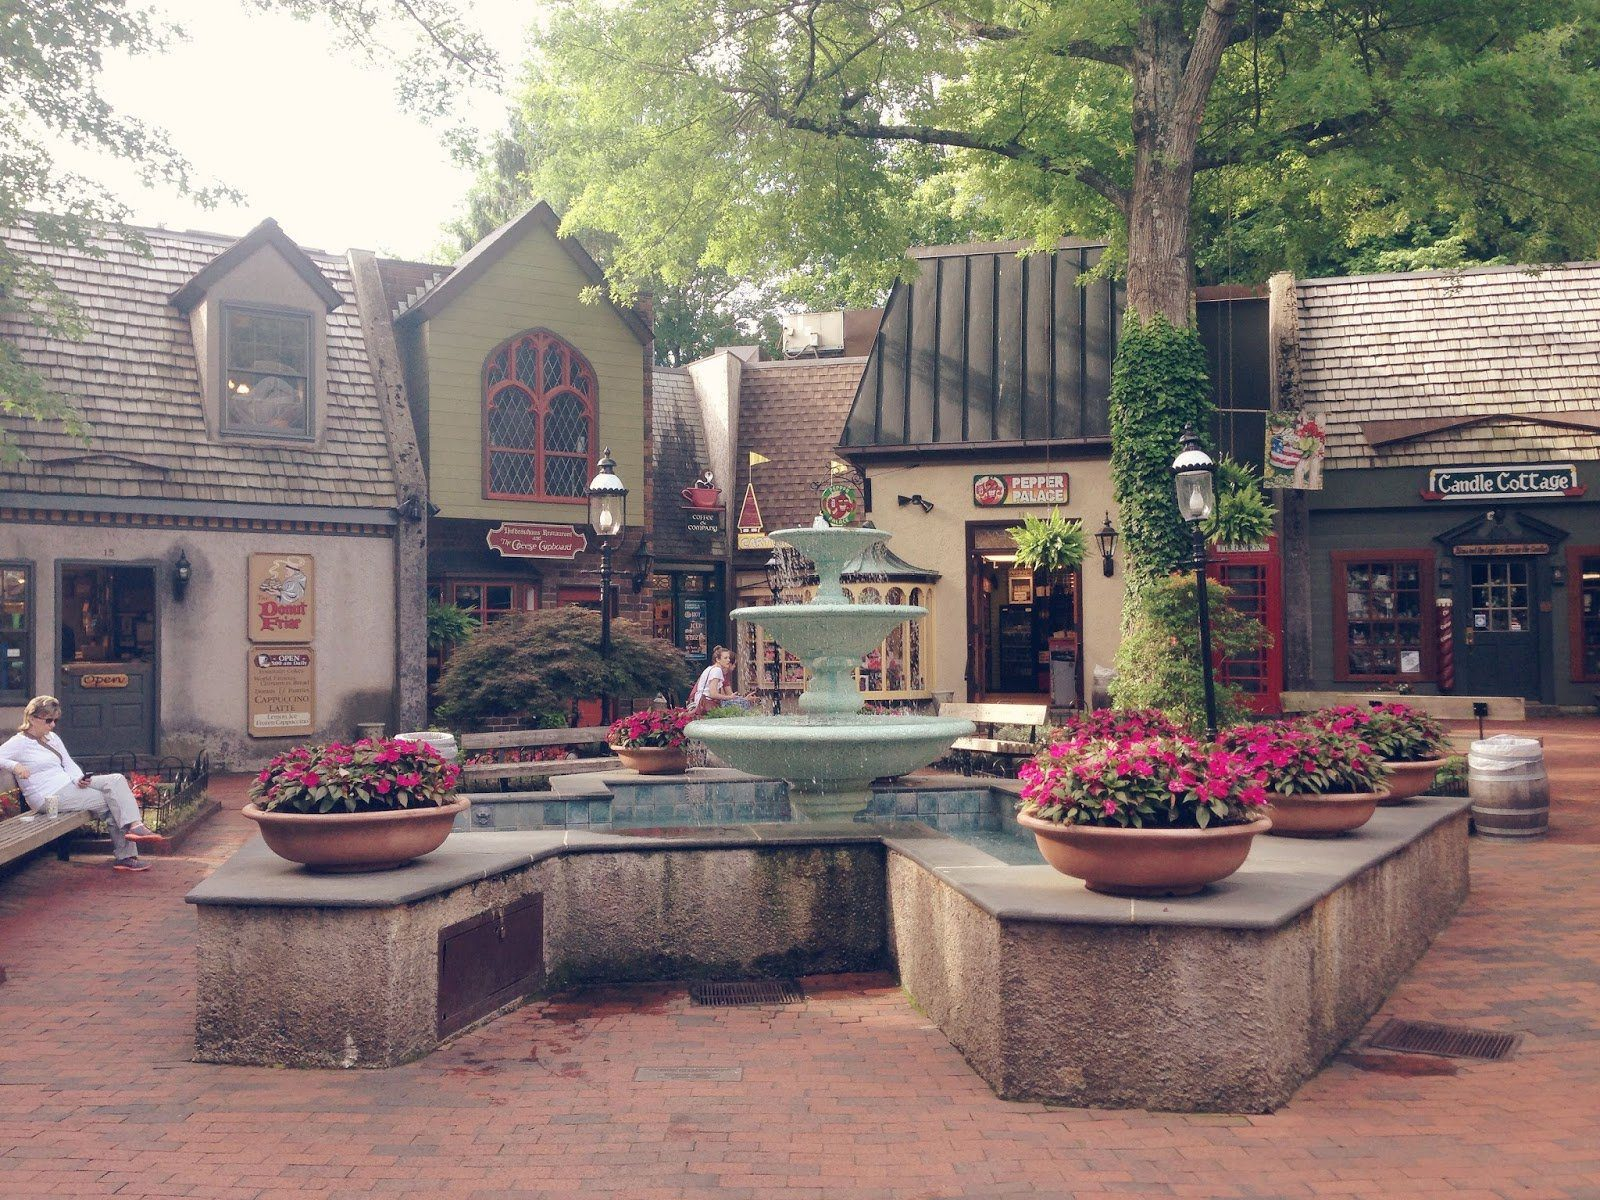 Visiting Gatlinburg, Tennessee